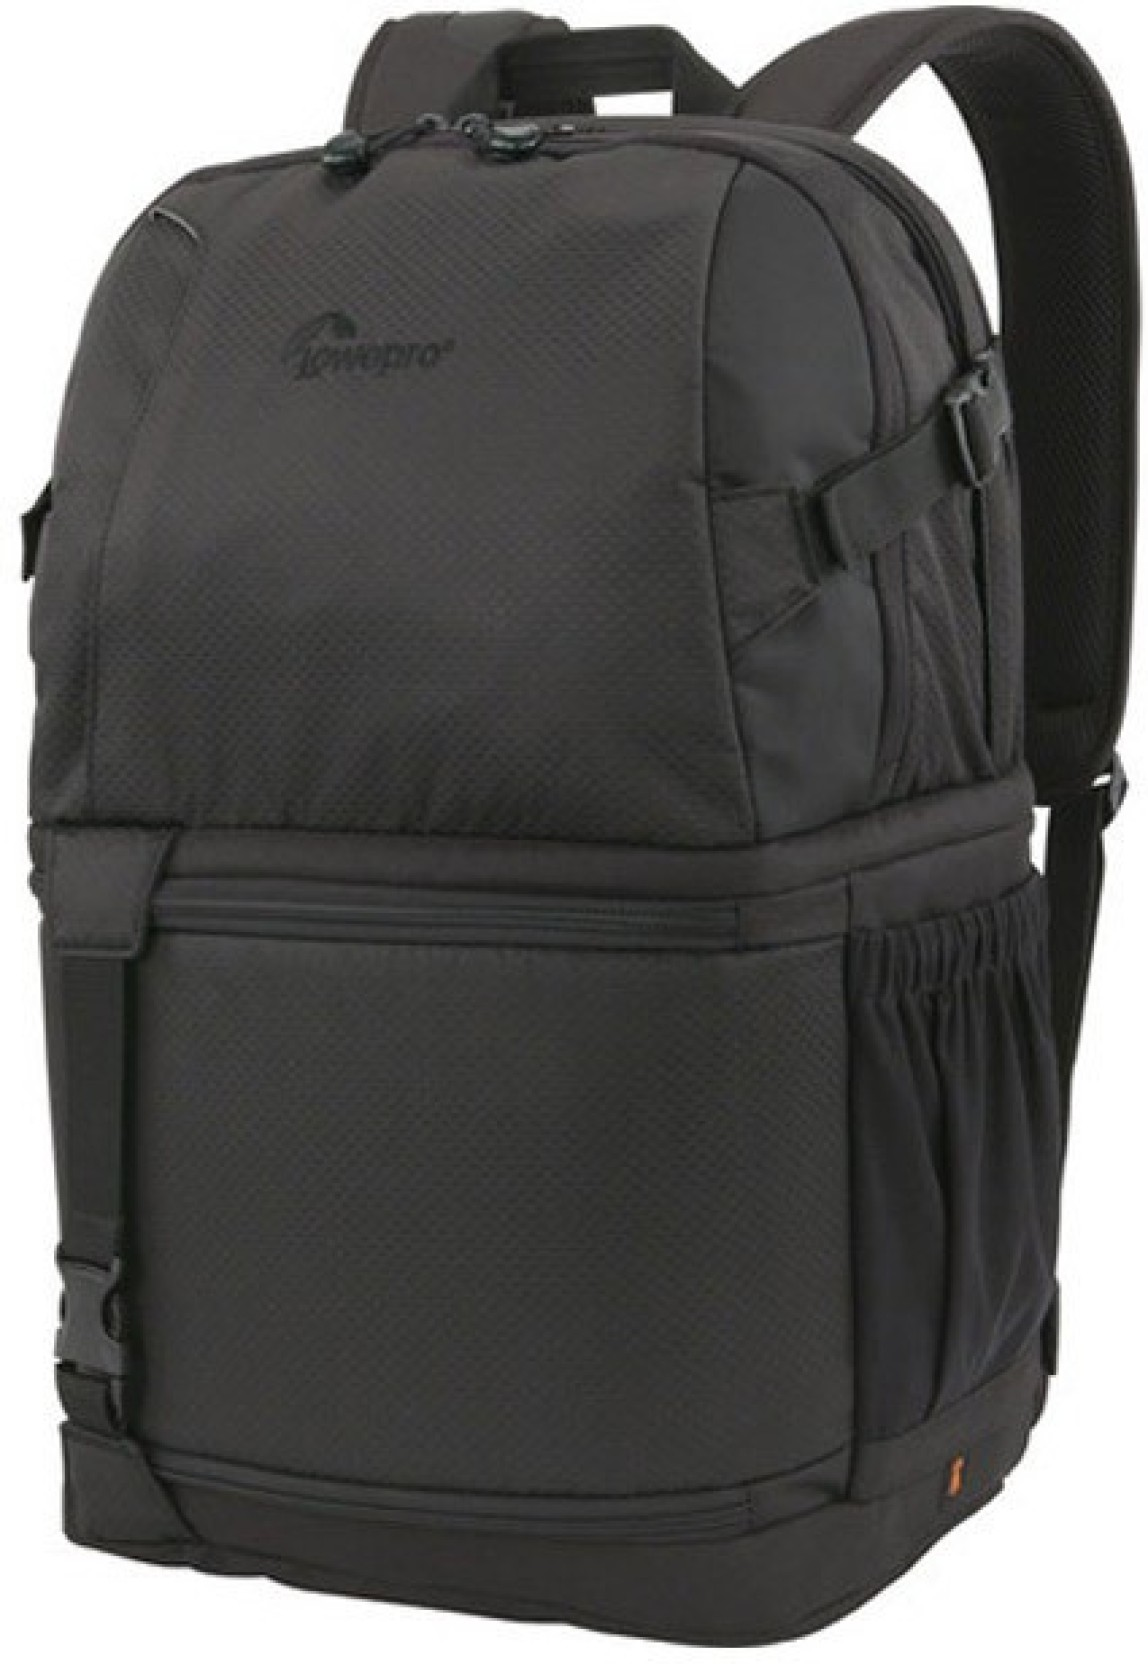 Lowepro Dslr Video Fastpack 350 Aw Black Camera Bag Photo Hatchback 16l Grey Add To Cart